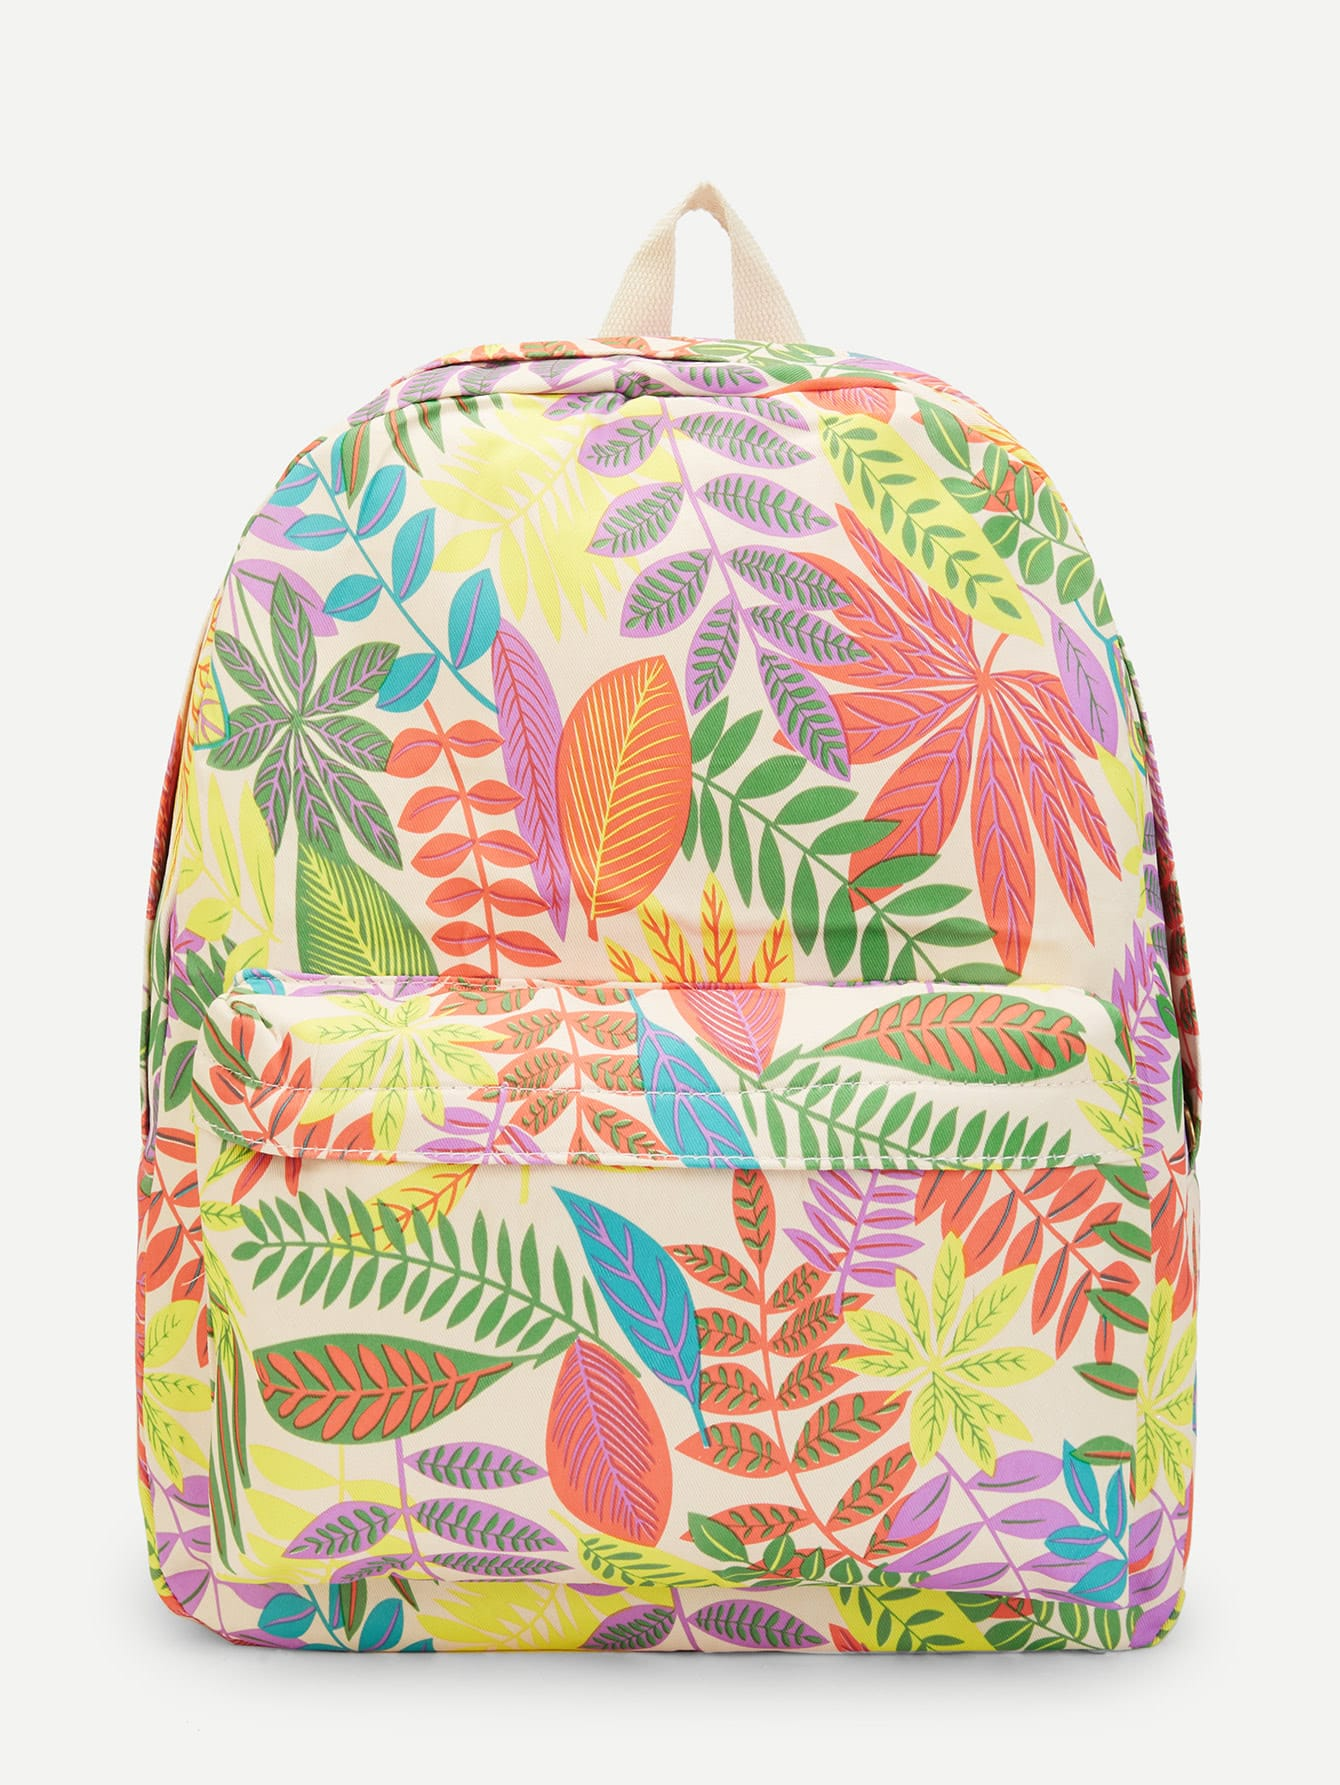 Jungle Print Backpack new skydue floral printed accordion document file folder expanding letter organizer pink